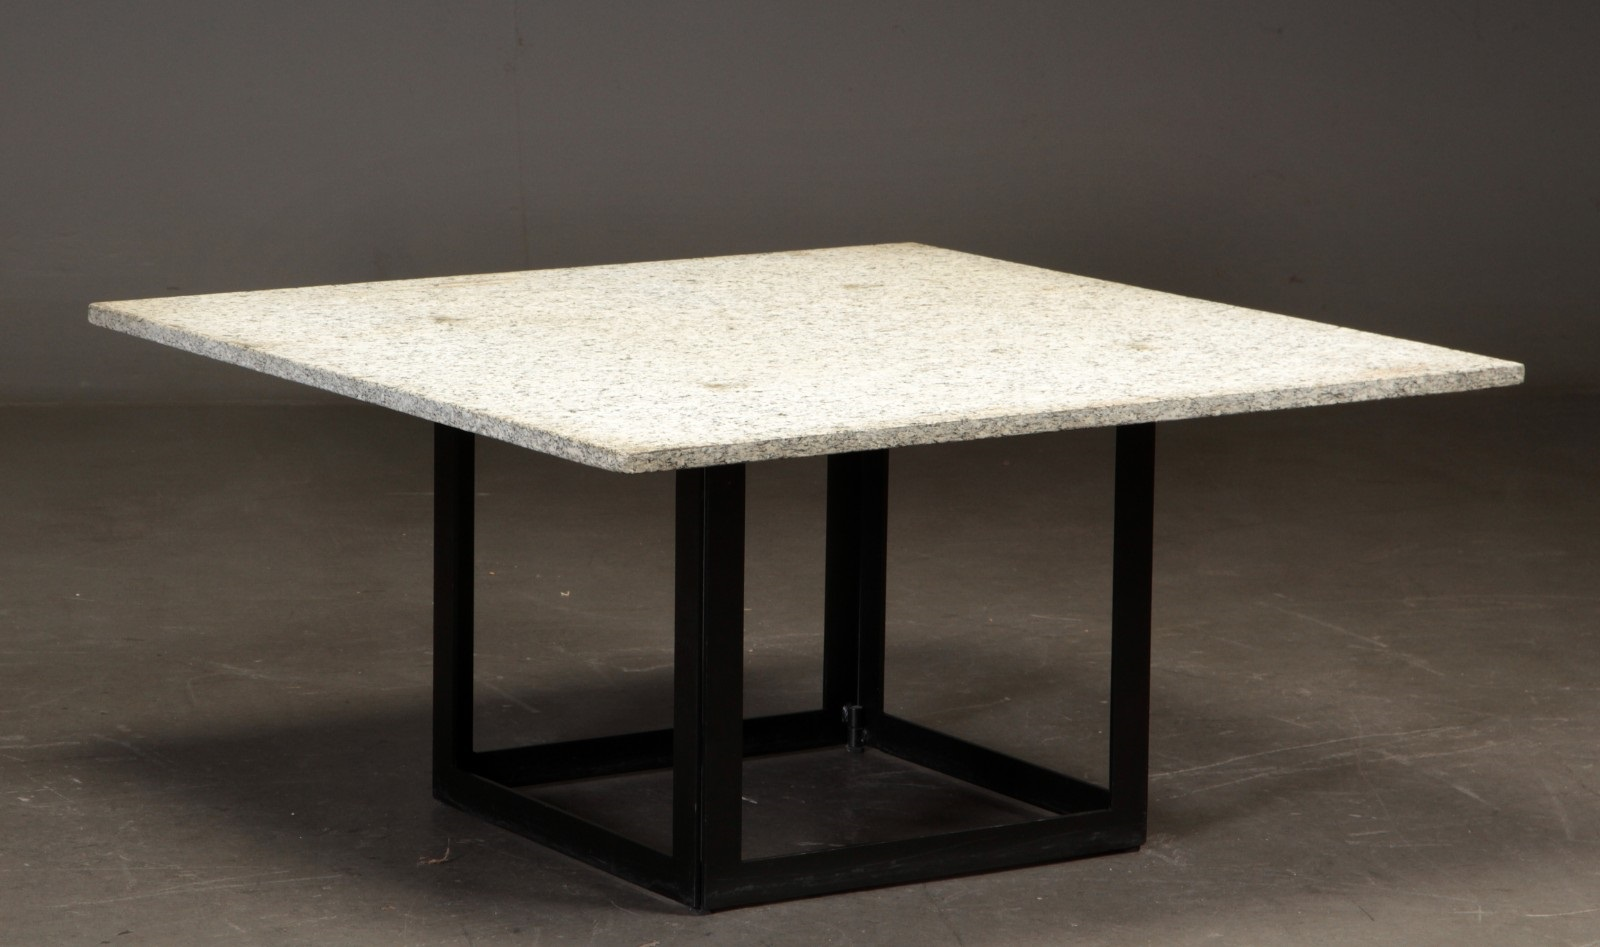 Coffee Table With Granite Top And Steel Frame 100 X Cm